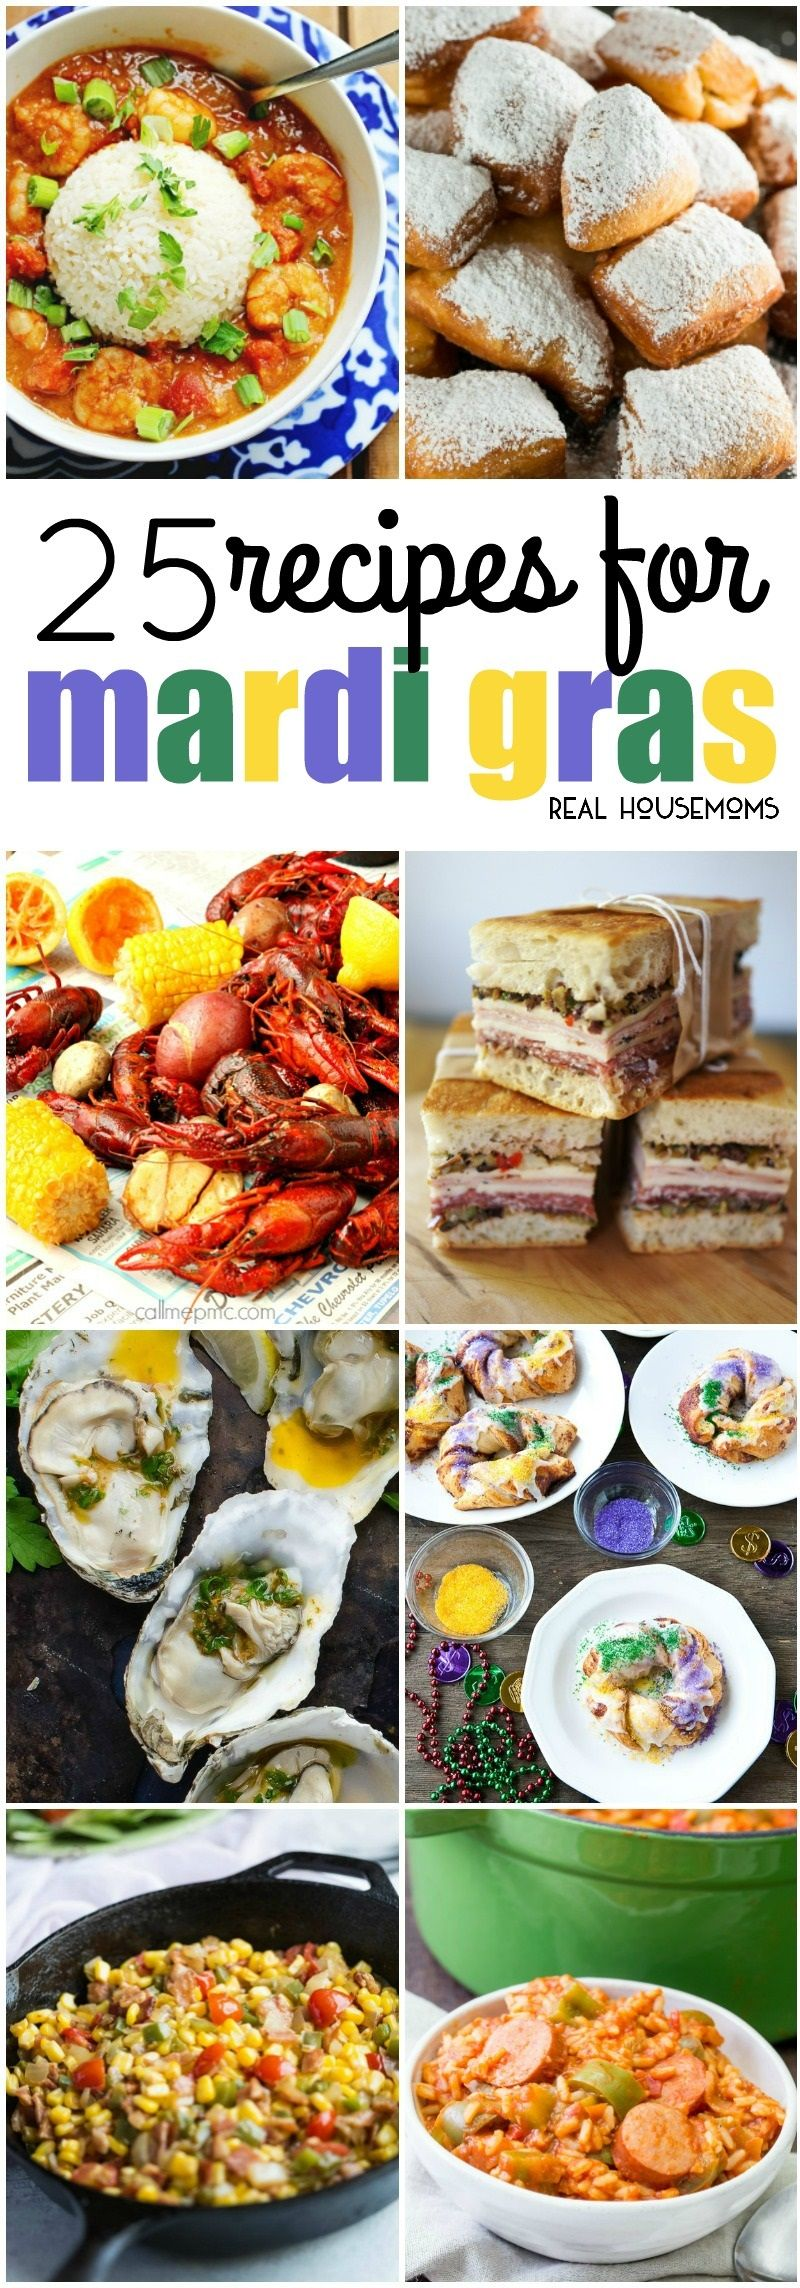 25 mardi gras recipes - real housemoms. we've rounded up the best 25